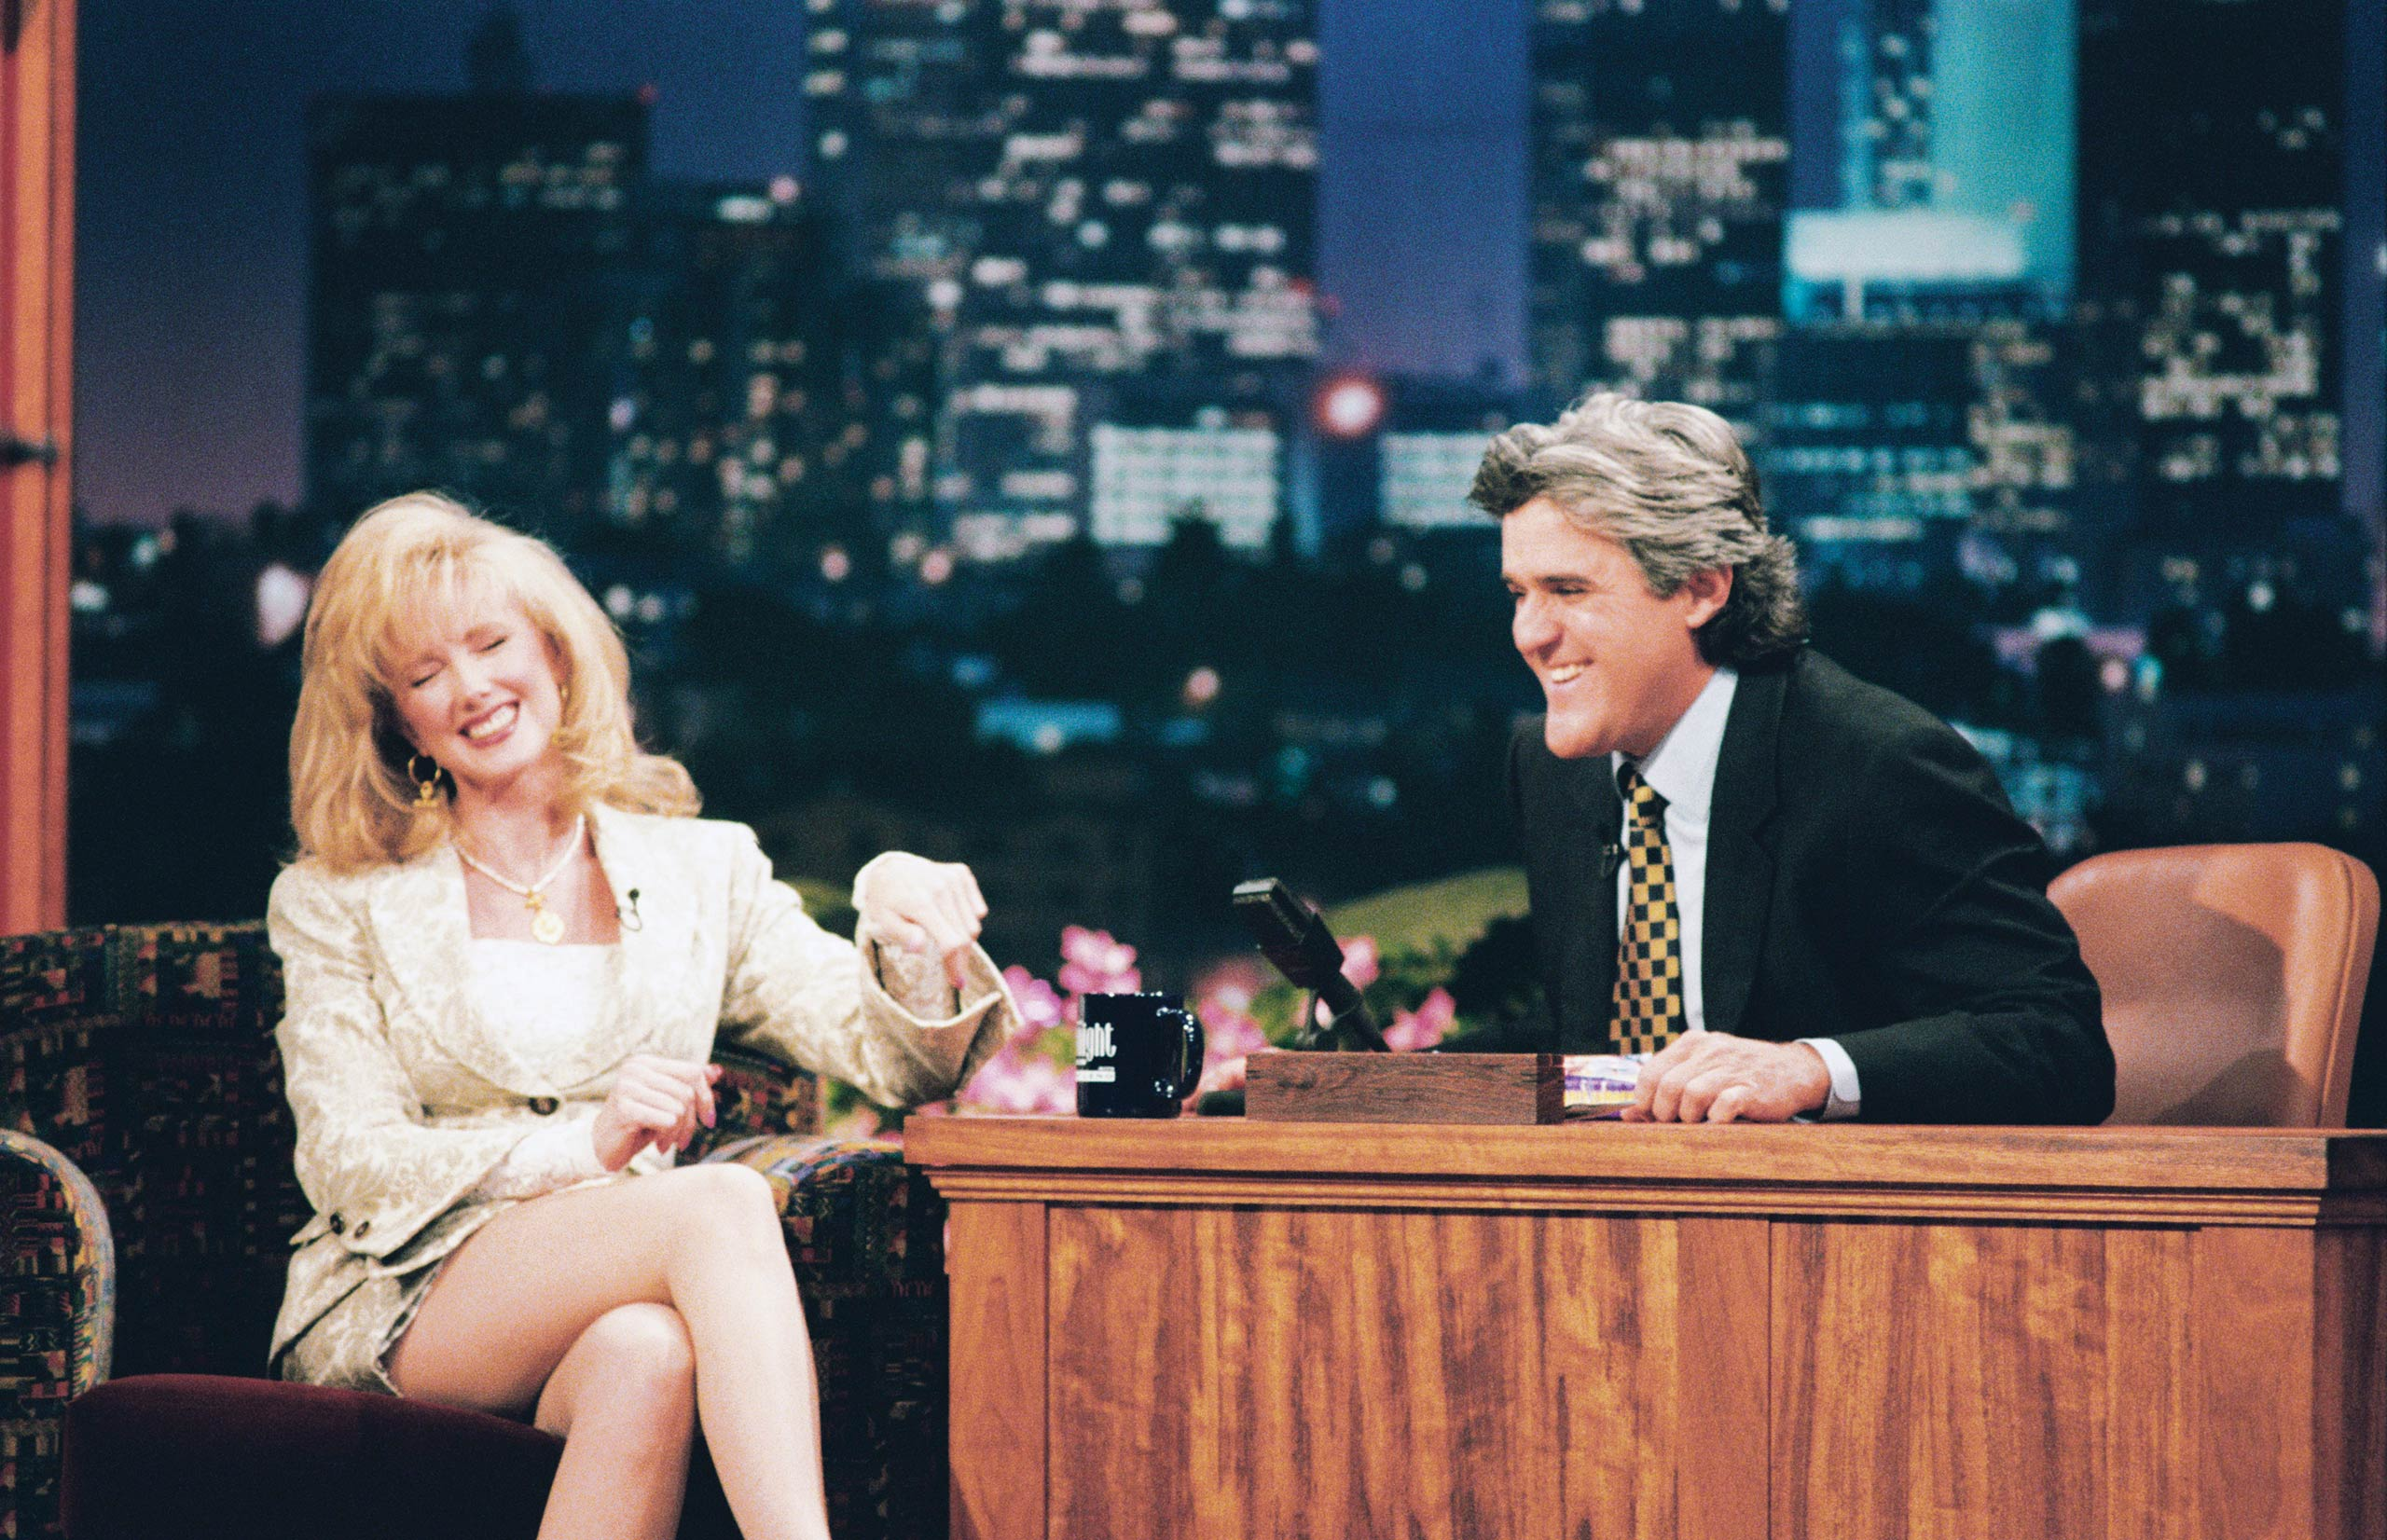 <strong>Jay Leno</strong> – Leno plays himself interviewing Chandler's mom, an erotic novelist, on <i>The Tonight Show</i>